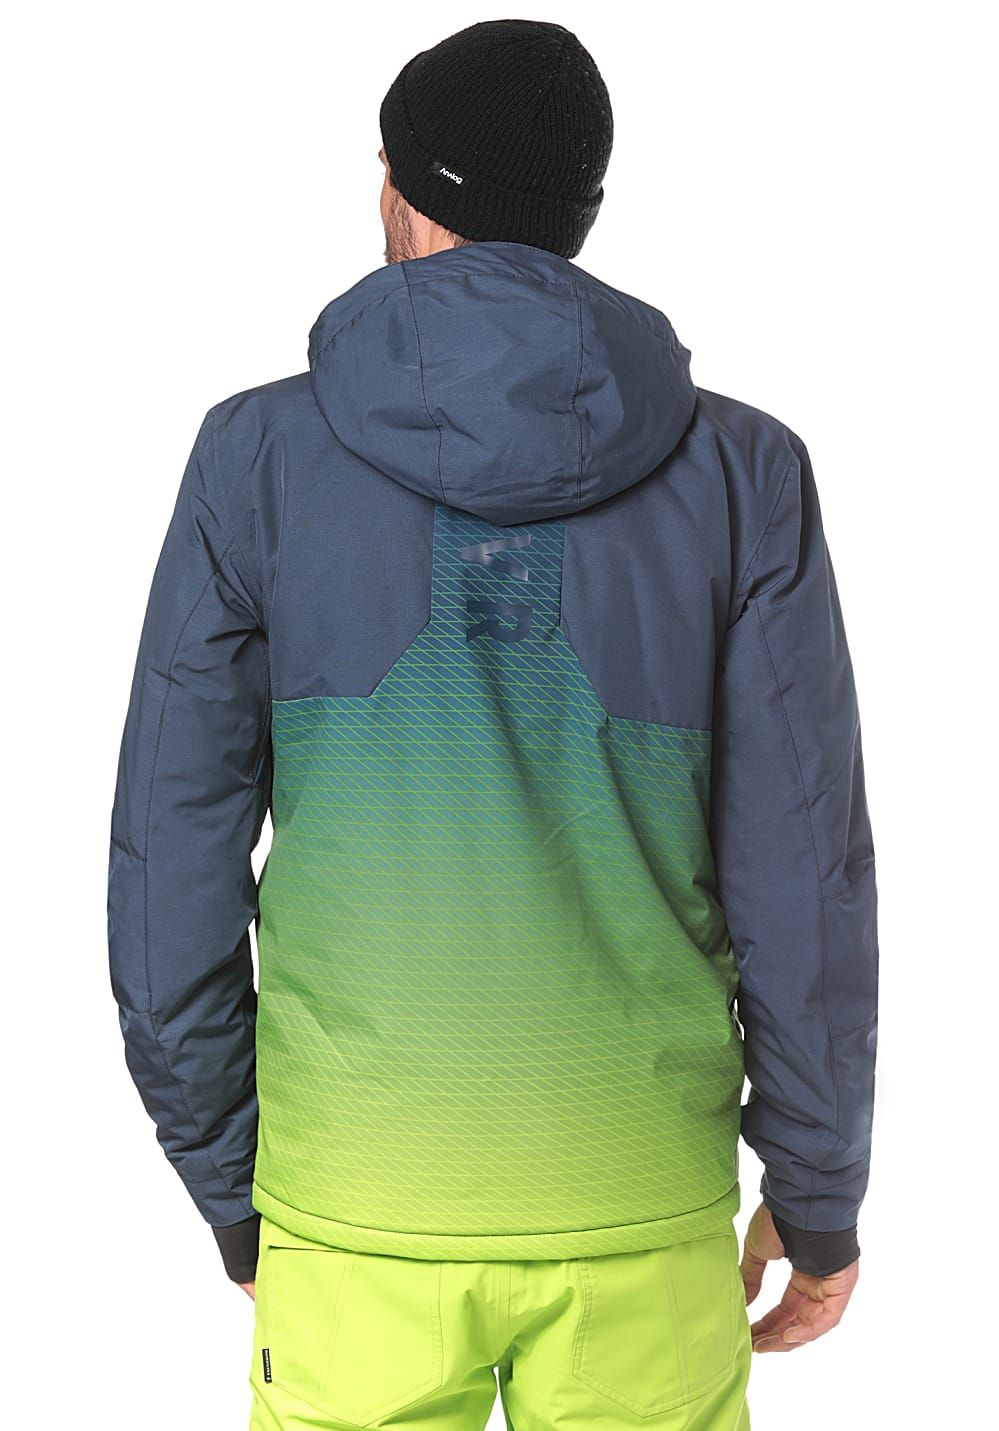 a6ae12d9309 Next. -20%. Quiksilver. Mission Plus Engineered - Snowboard Jacket for Men